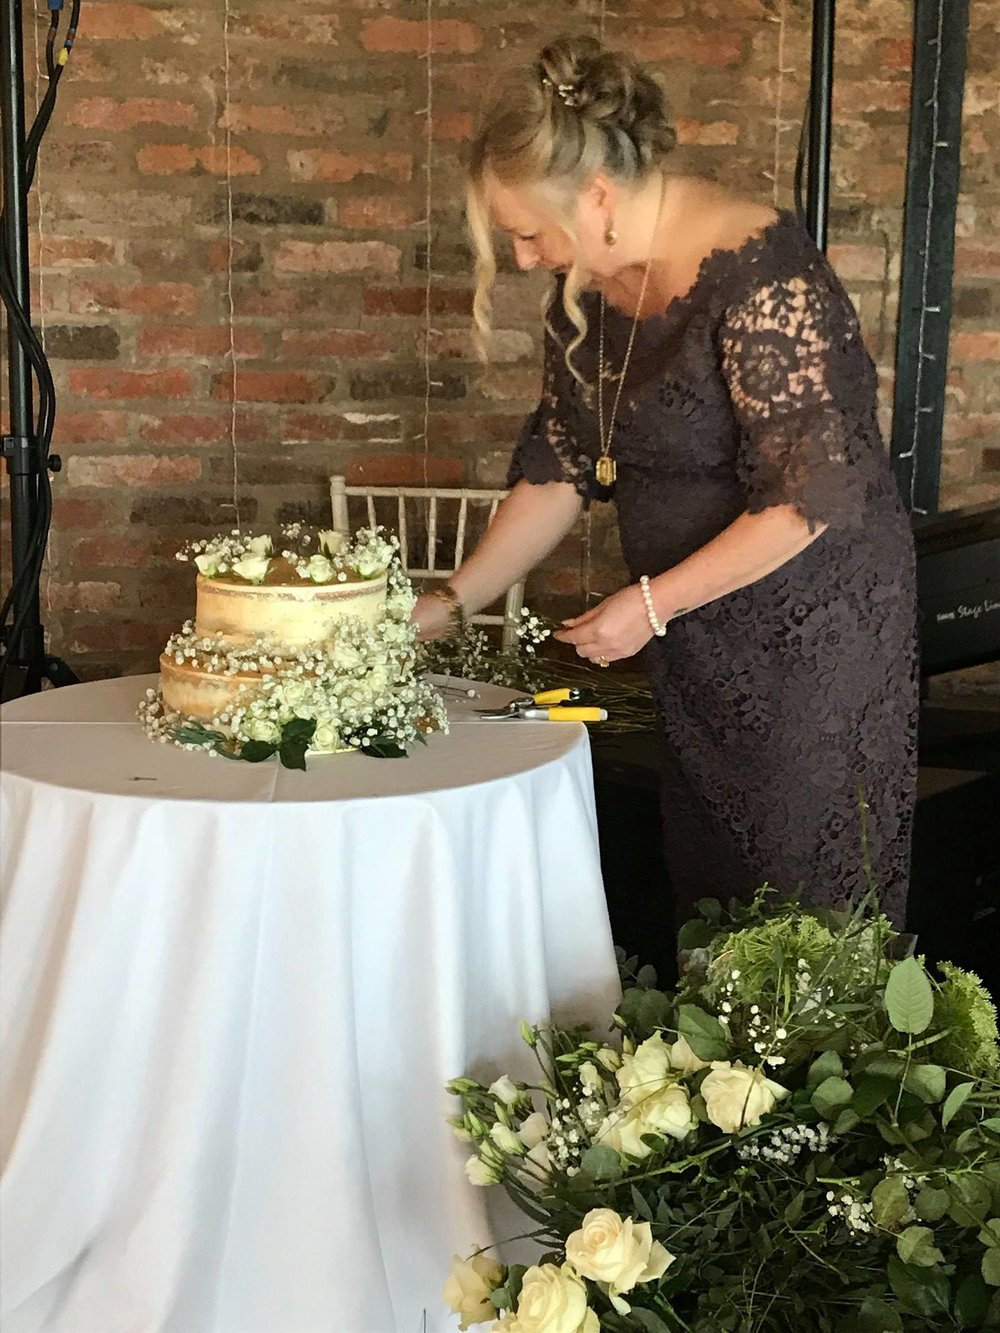 The Mother-of-the-Bride is making a fabulous job of decorating the cake! Well done MOTB!